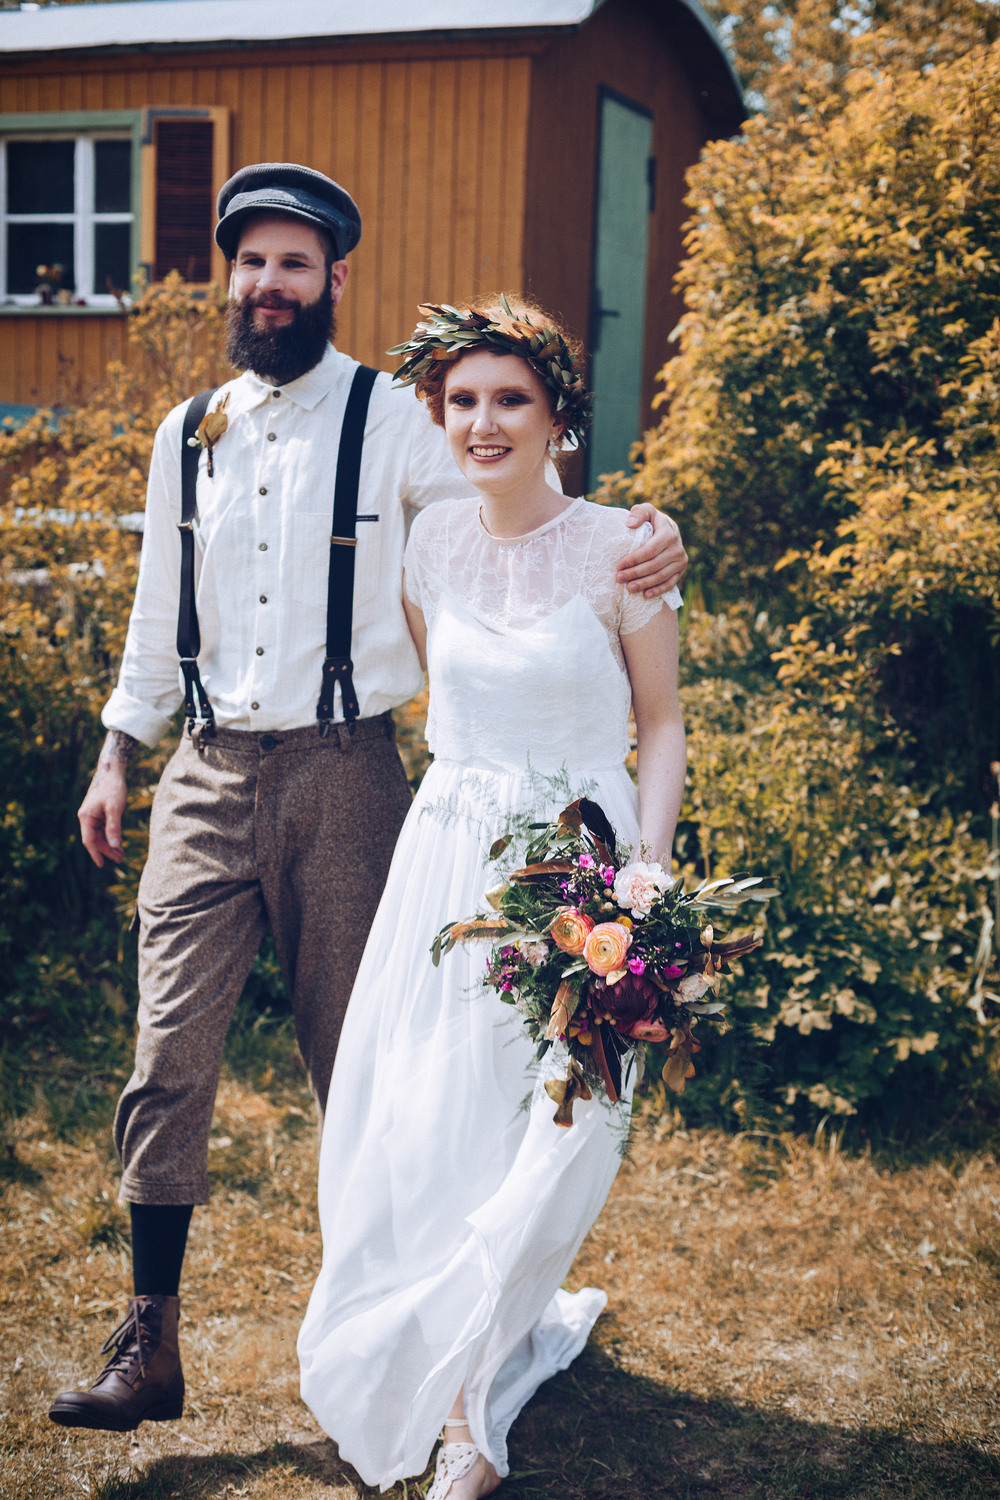 Boho Wedding - Inspirationen Für Die Perfekte Hippie